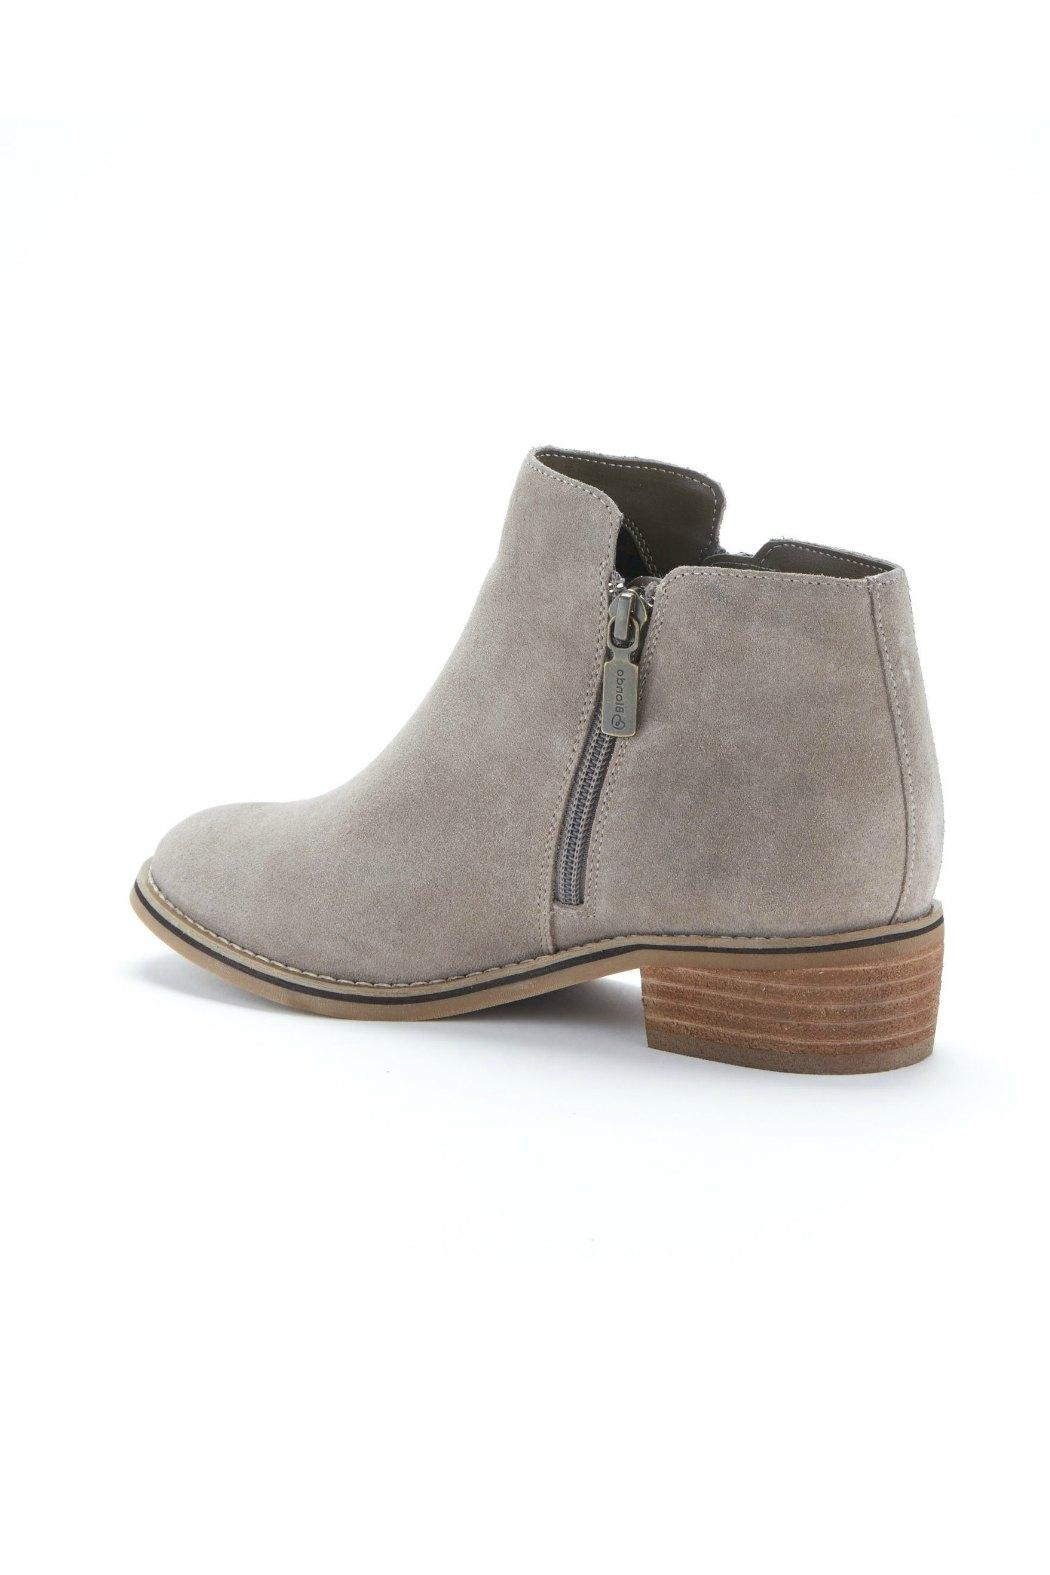 Blondo Liam Suede Boot - Front Full Image